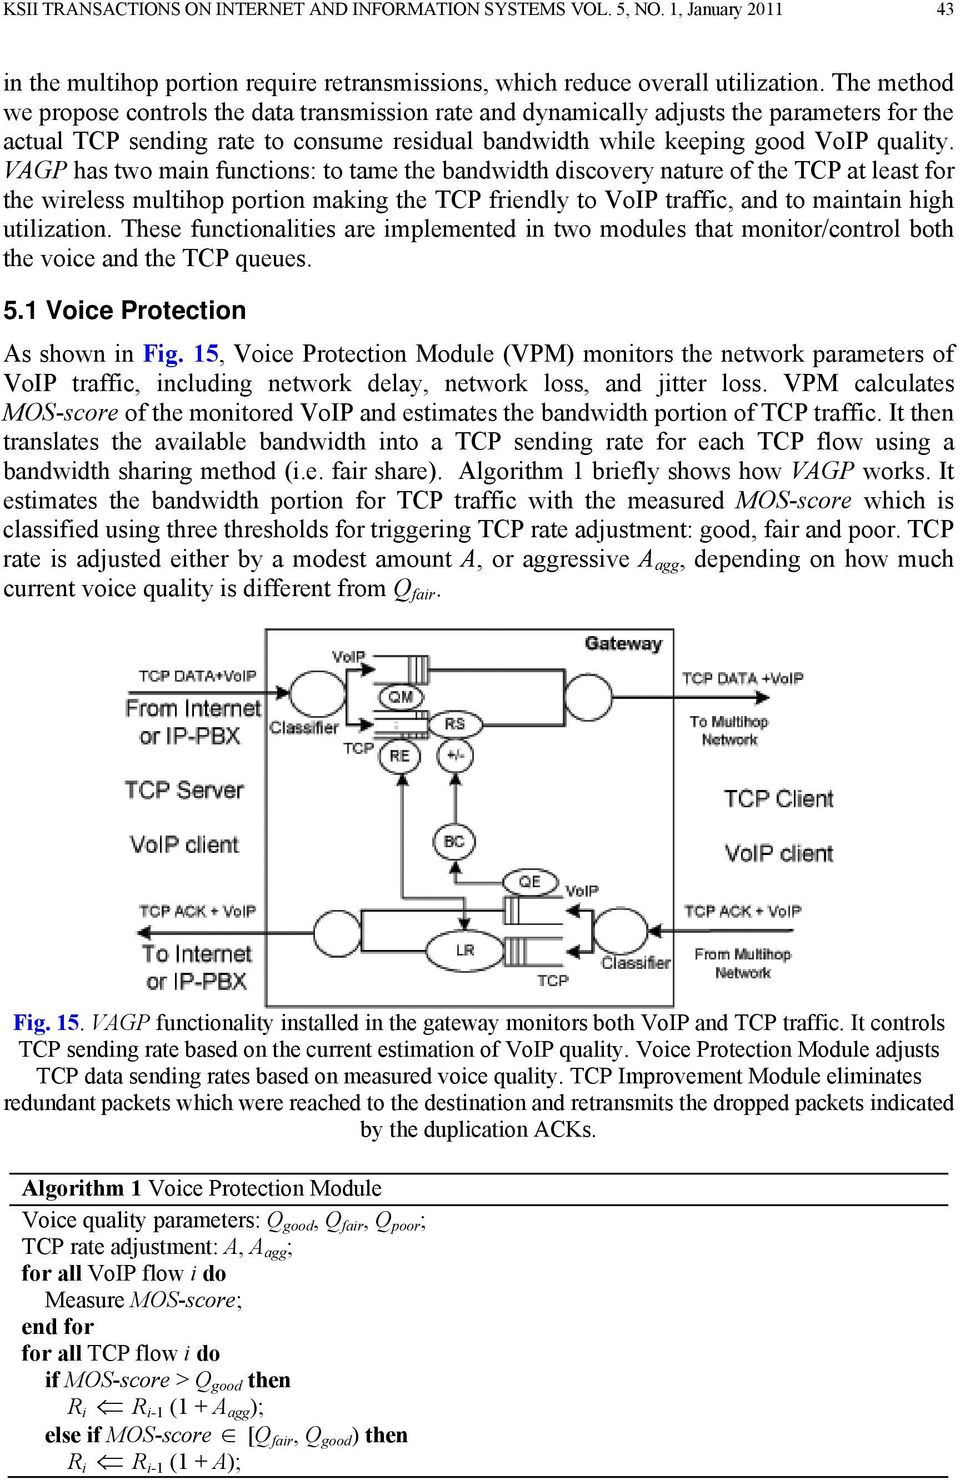 VAGP has two main functions: to tame the bandwidth discovery nature of the TCP at least for the wireless multihop portion making the TCP friendly to VoIP traffic, and to maintain high utilization.